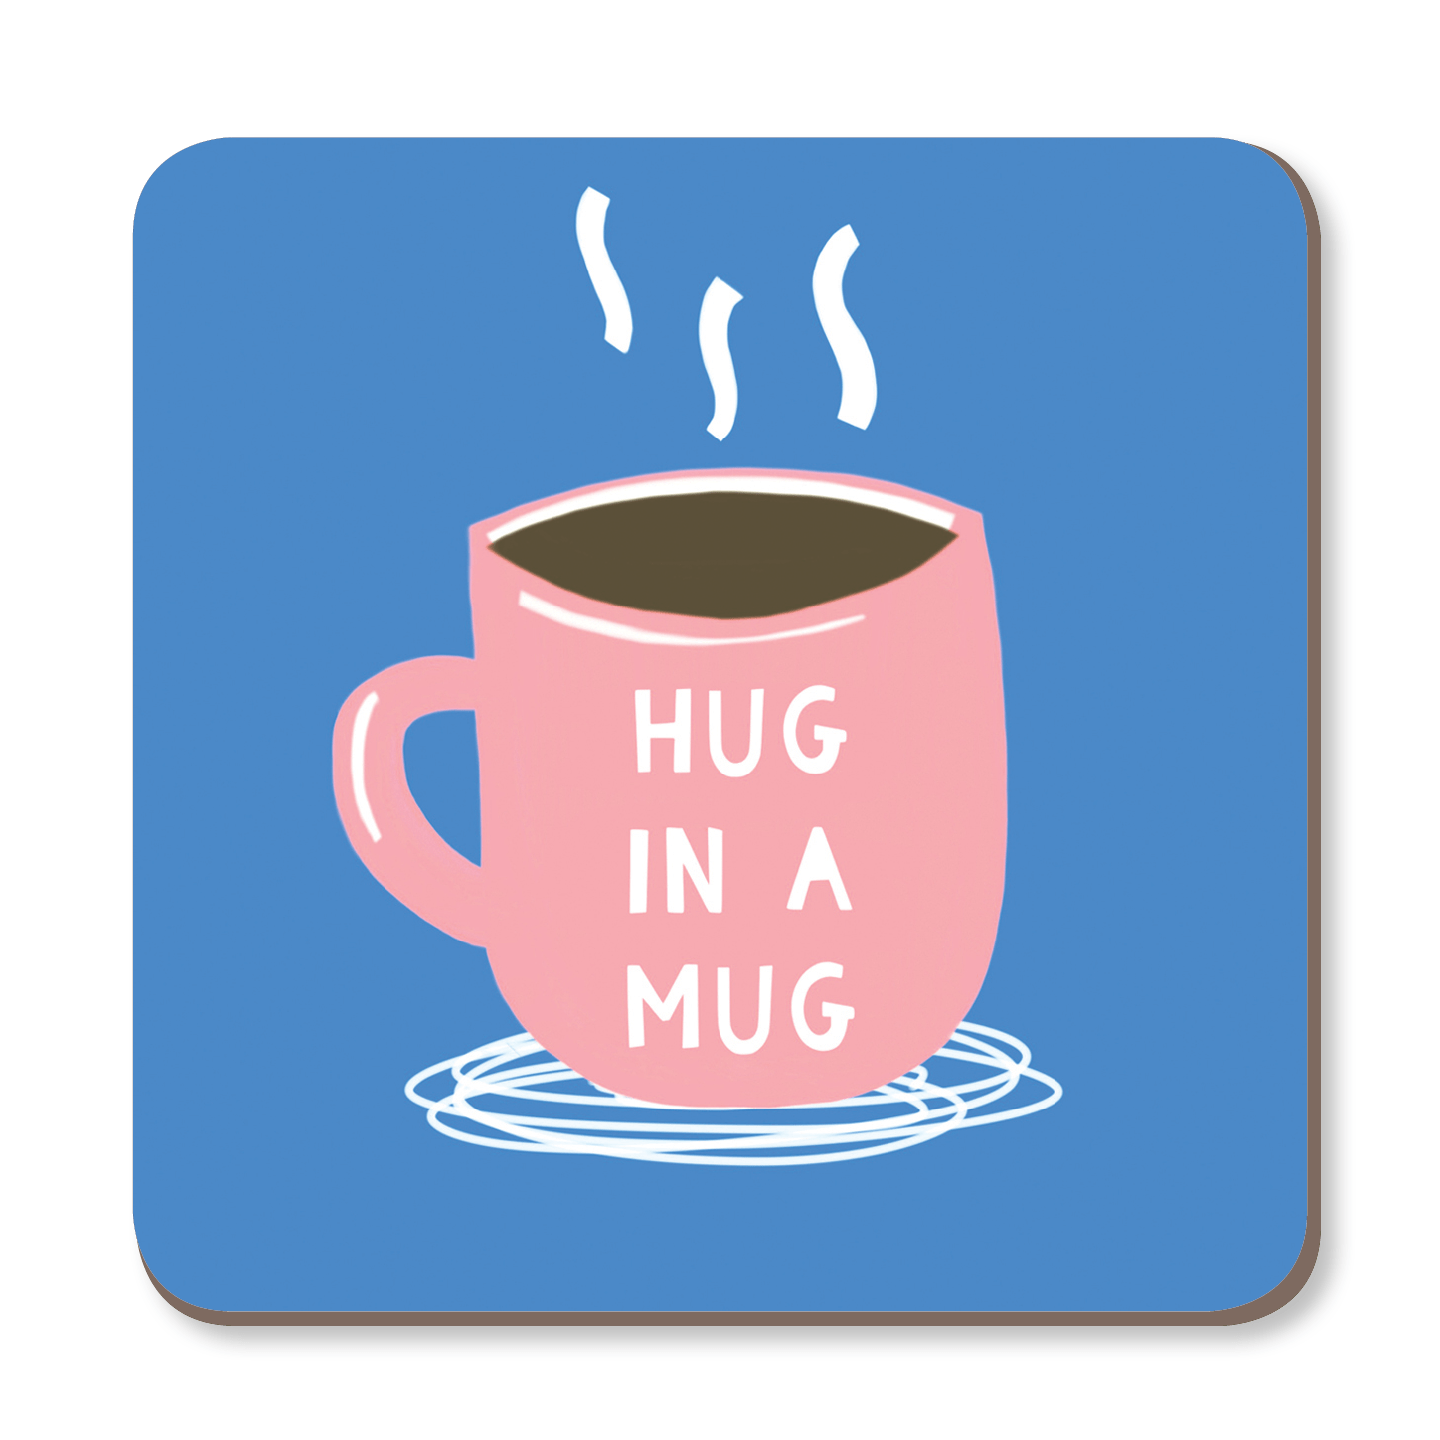 Hug In a Mug Coaster by Zoe Spry - Whale and Bird